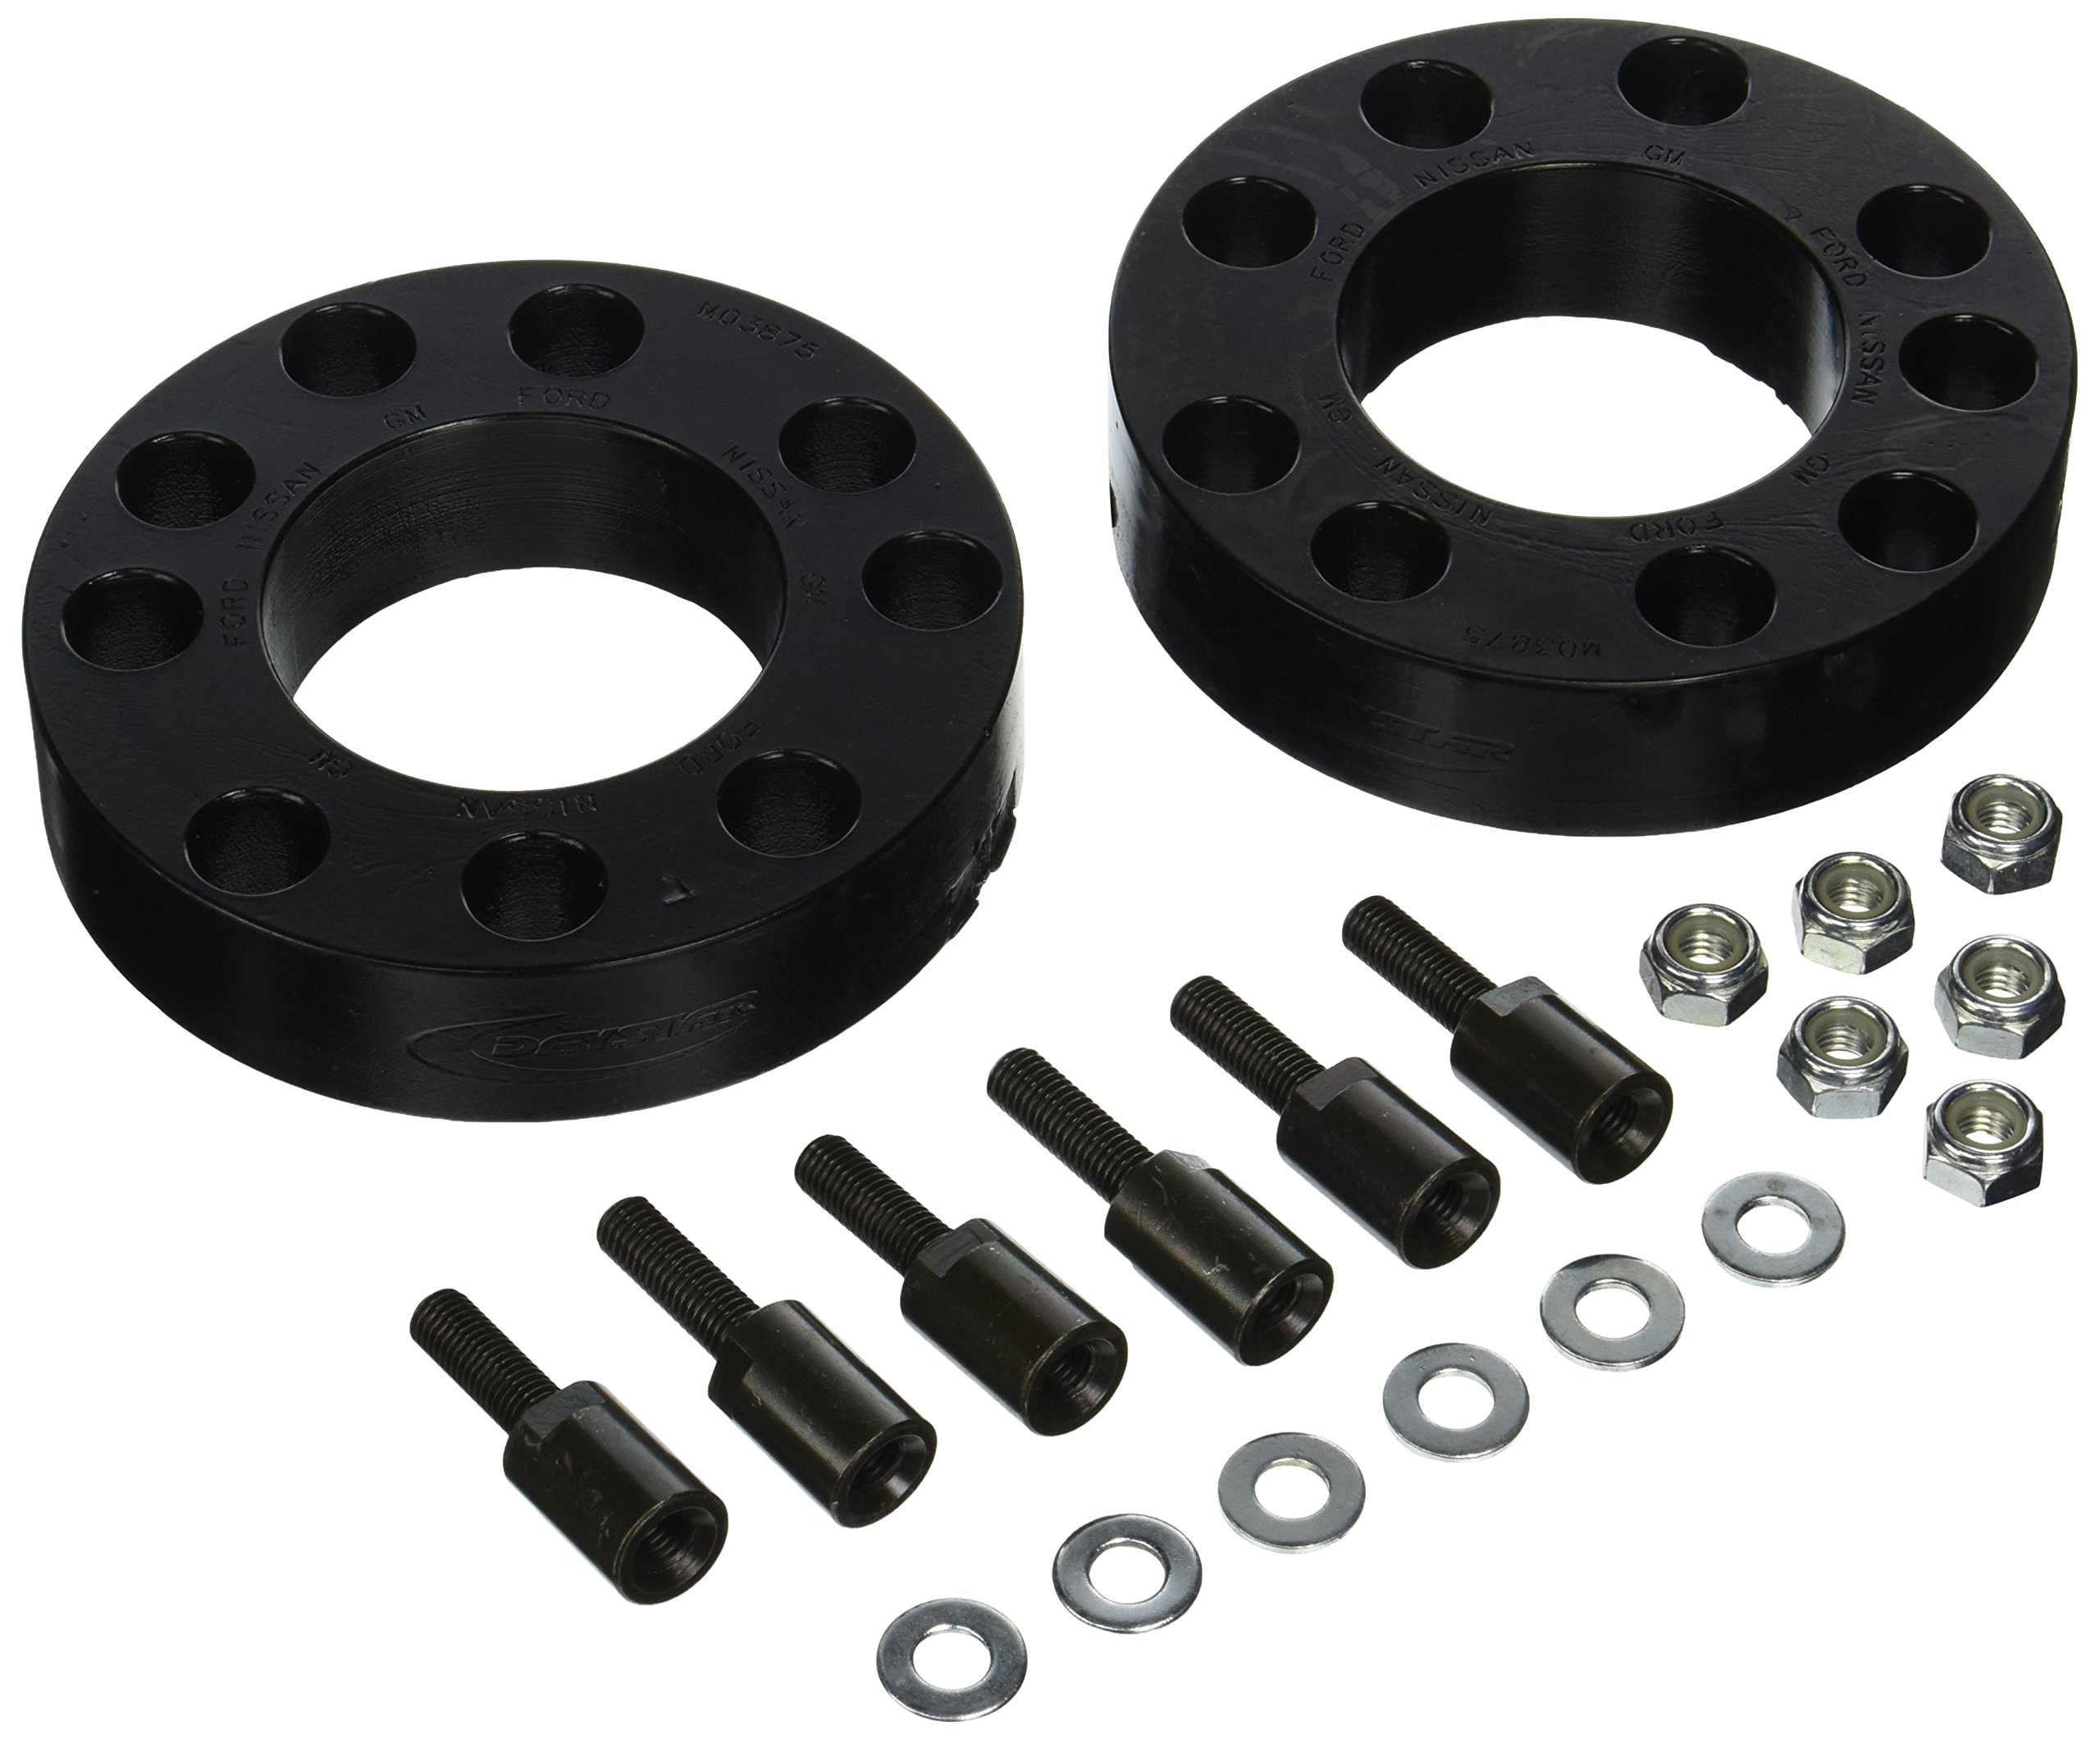 Daystar, Chevy/GMC 1500 Silverado 2'' Leveling Kit, fits 2014 to 2017 2/4WD, all transmissions, all cabs KG09129BK, Made in America by Daystar